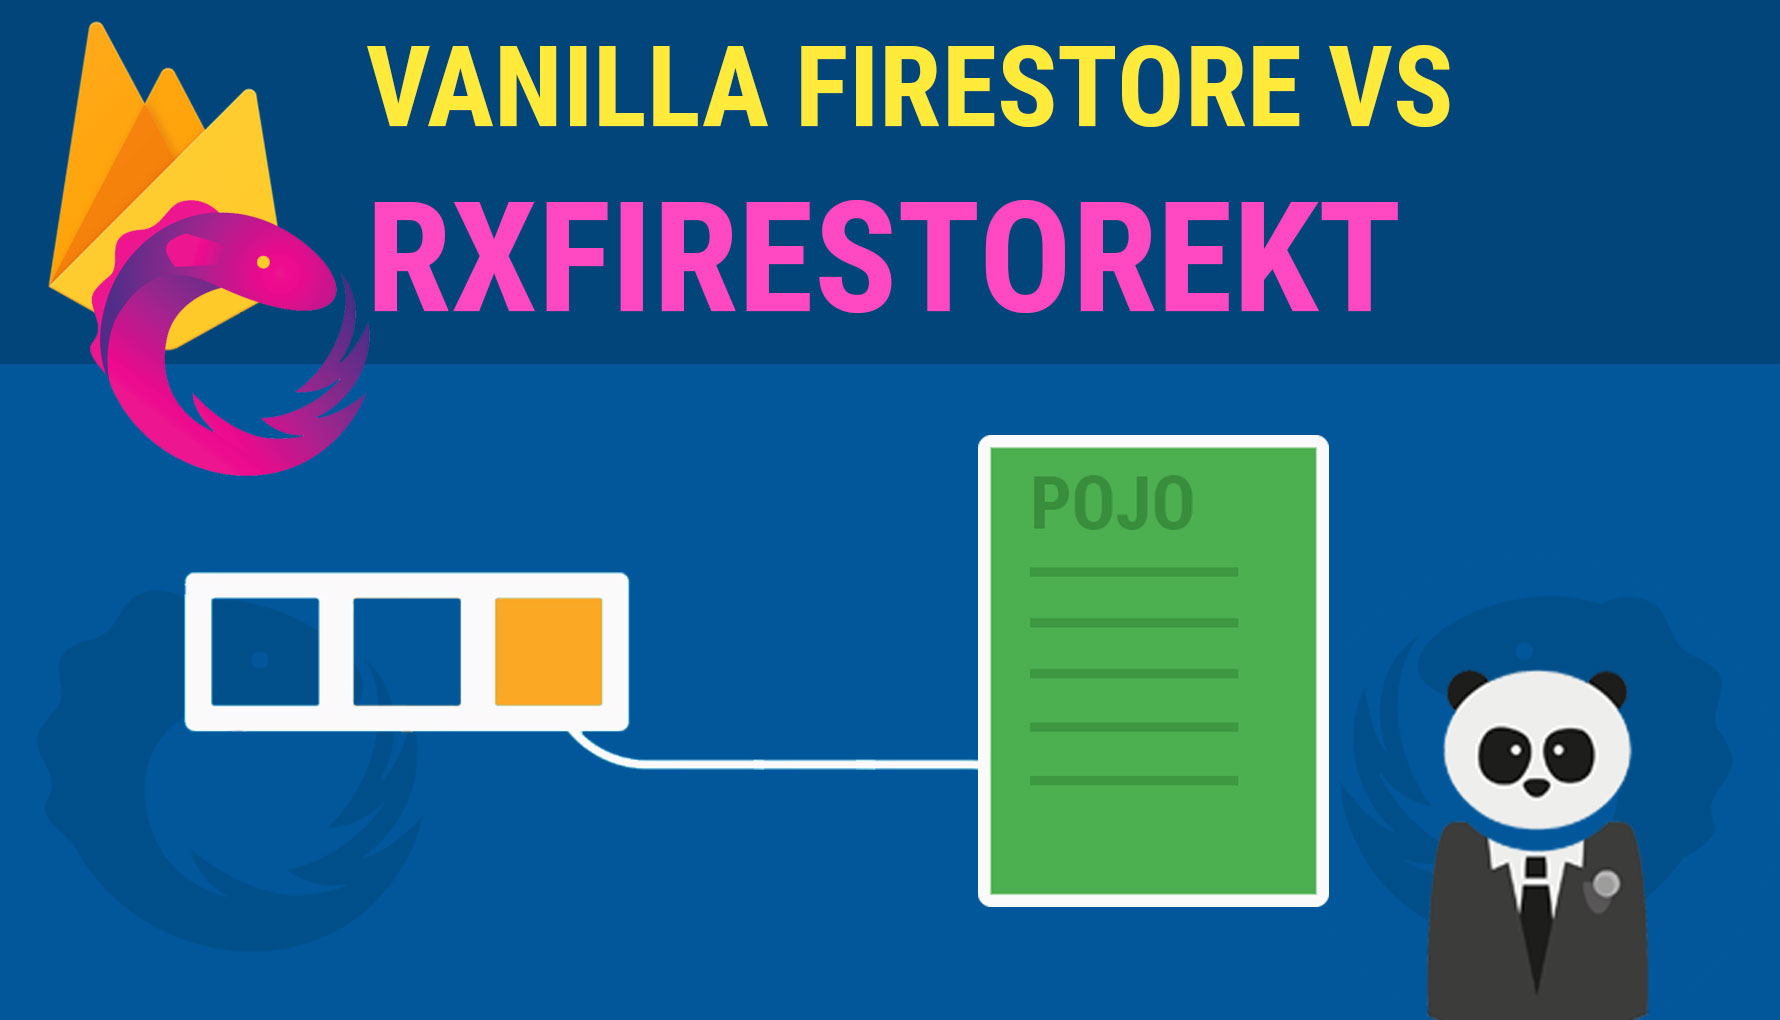 Vanilla Firestore vs RxFirestoreKT